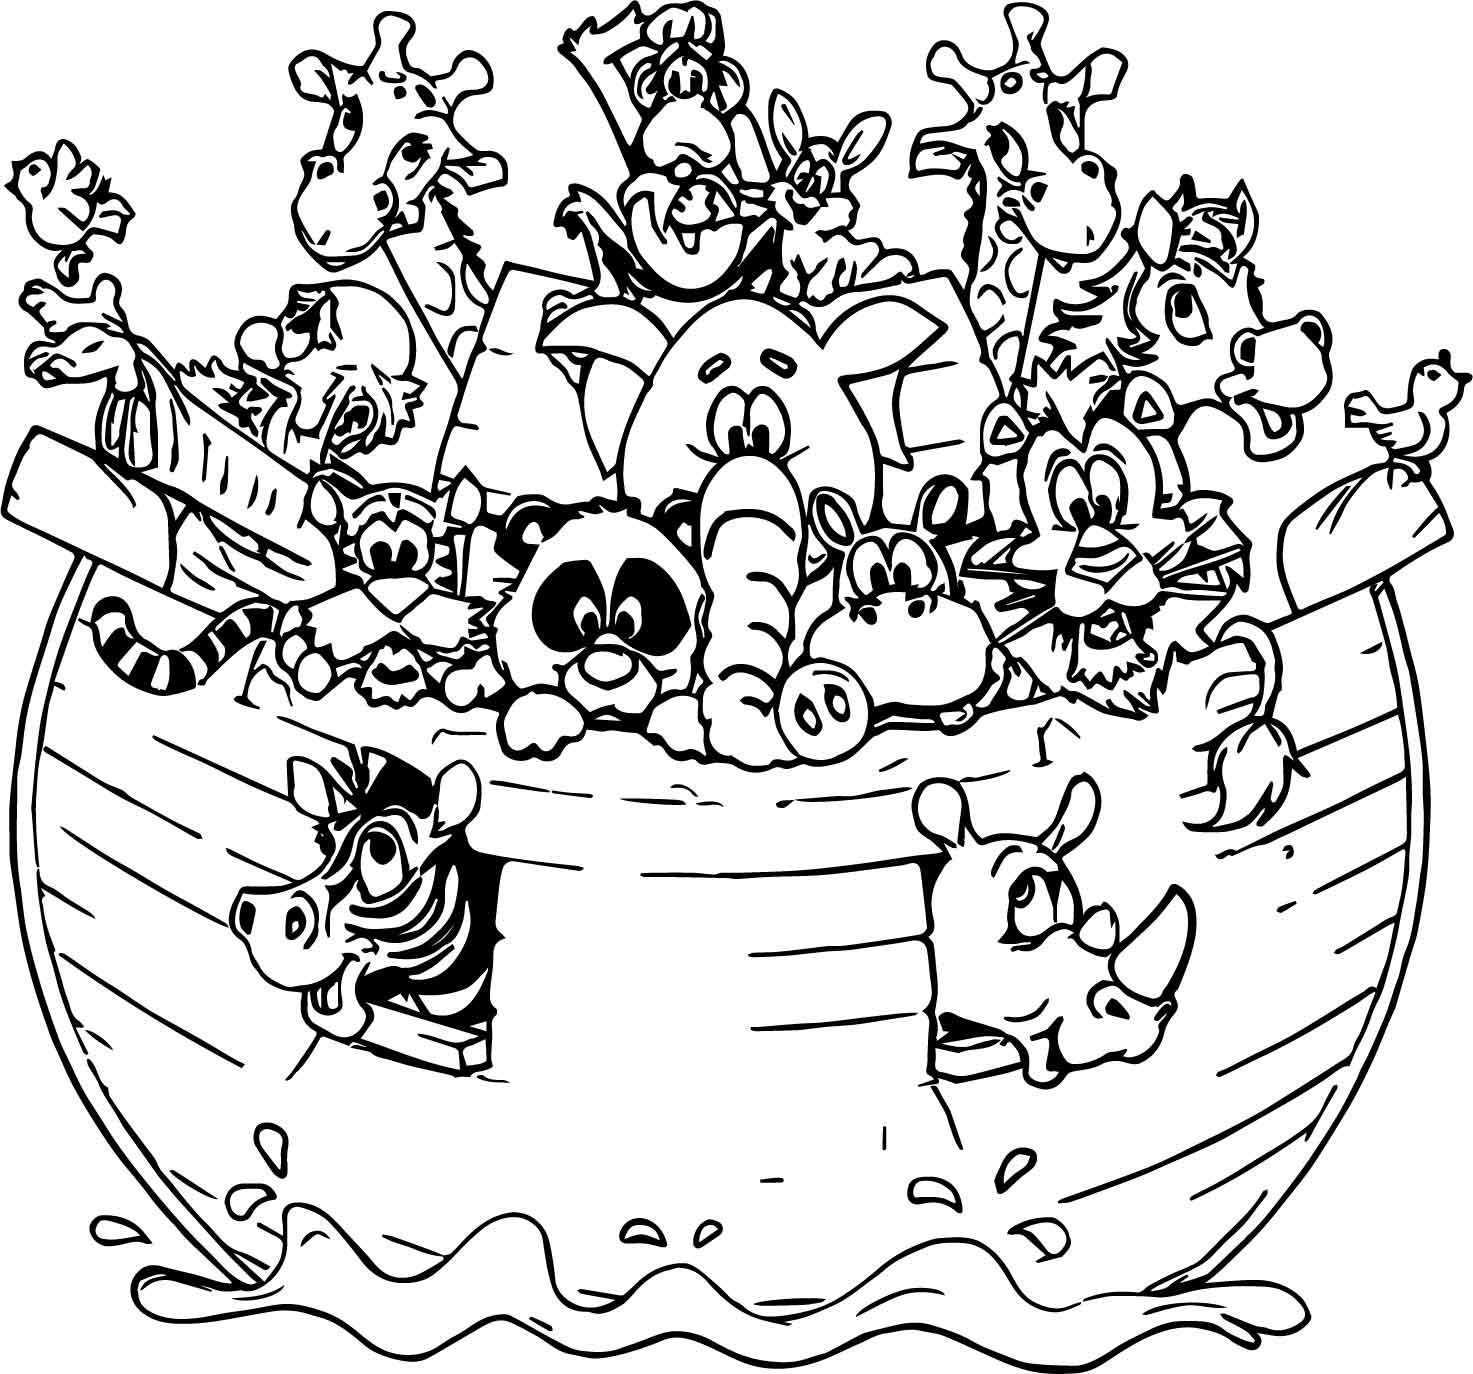 Noah Ark All Animal Coloring Page | Animal coloring pages ...